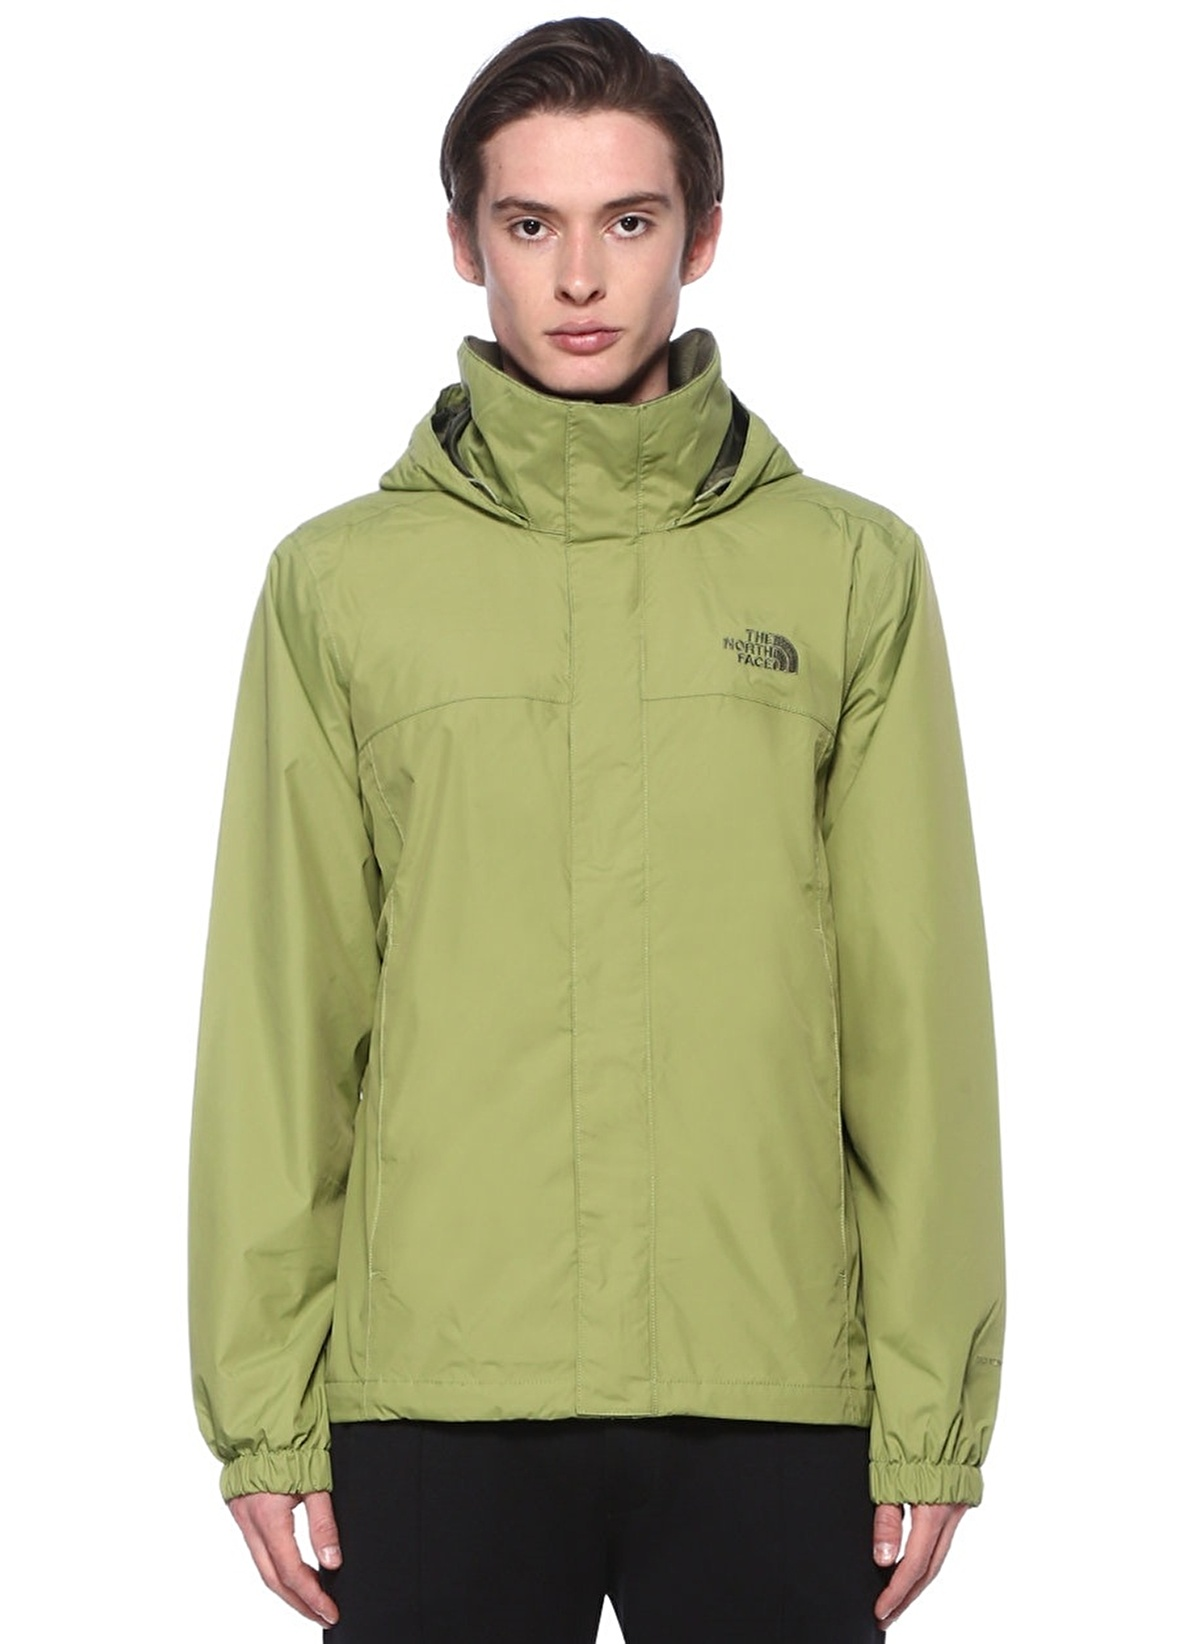 The North Face Ceket 459.0 Tl